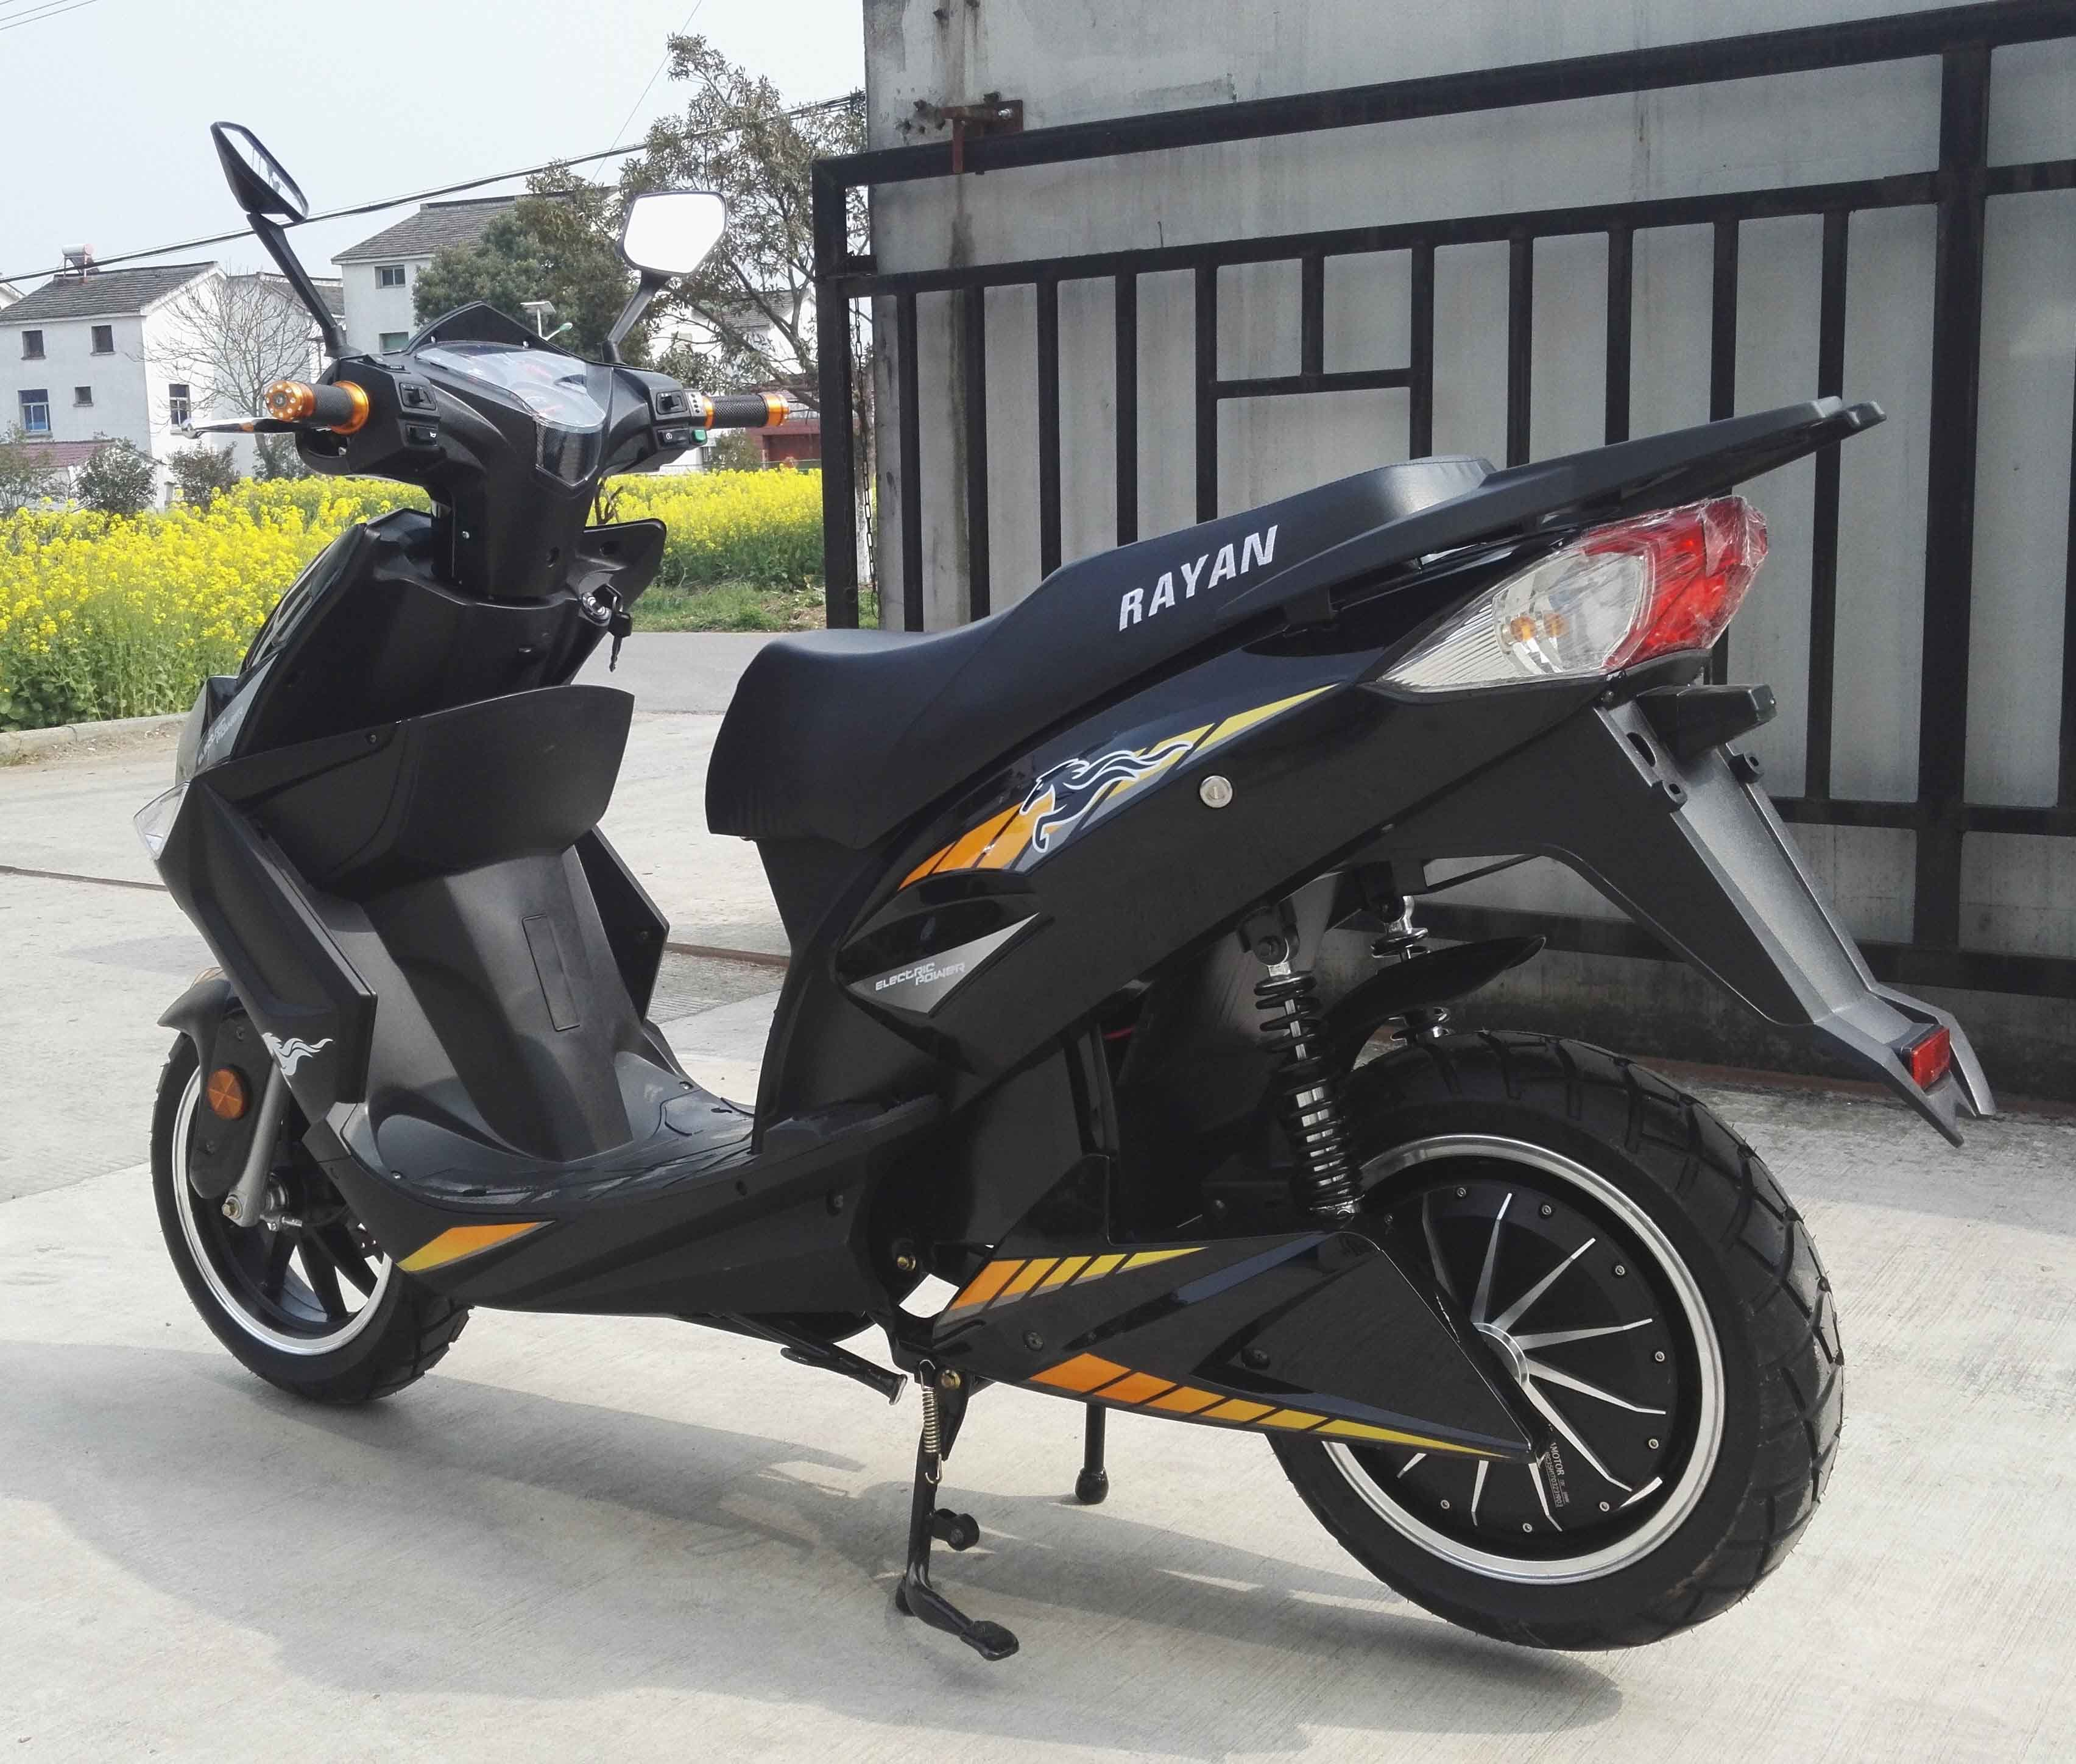 South America Market Hot Sales 1000W/1500W/2000W 72V20ah Lead Acid/ Lithium Battery Electric Motorcycle